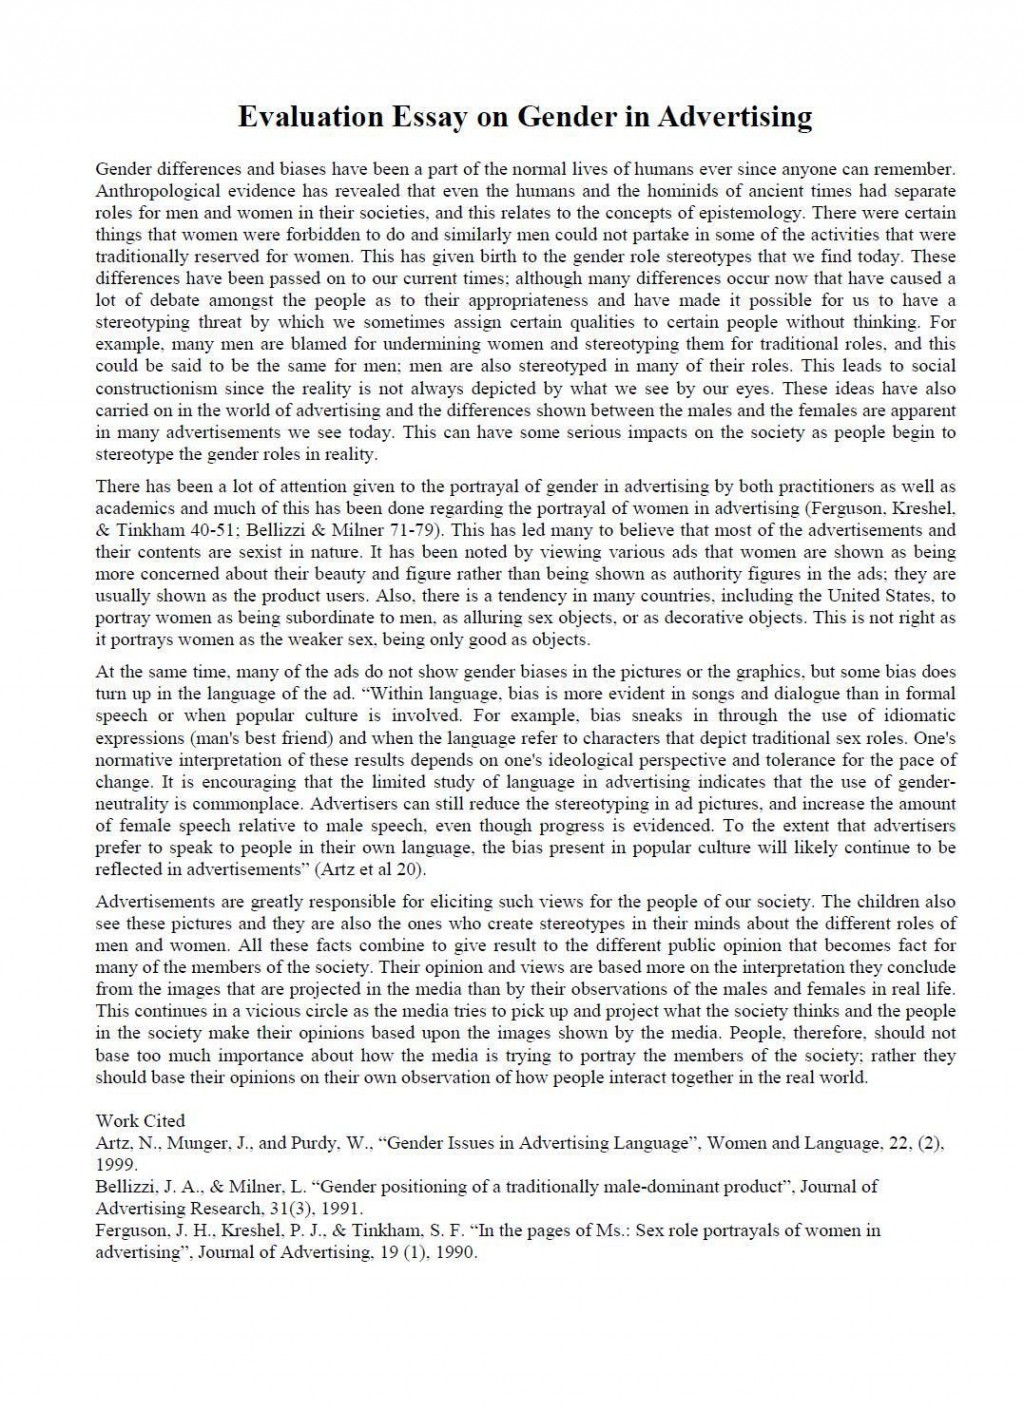 007 Ideas Of Evaluative Essays Stunning Writing An Evaluation And Arg Argument Shocking Essay Example Large